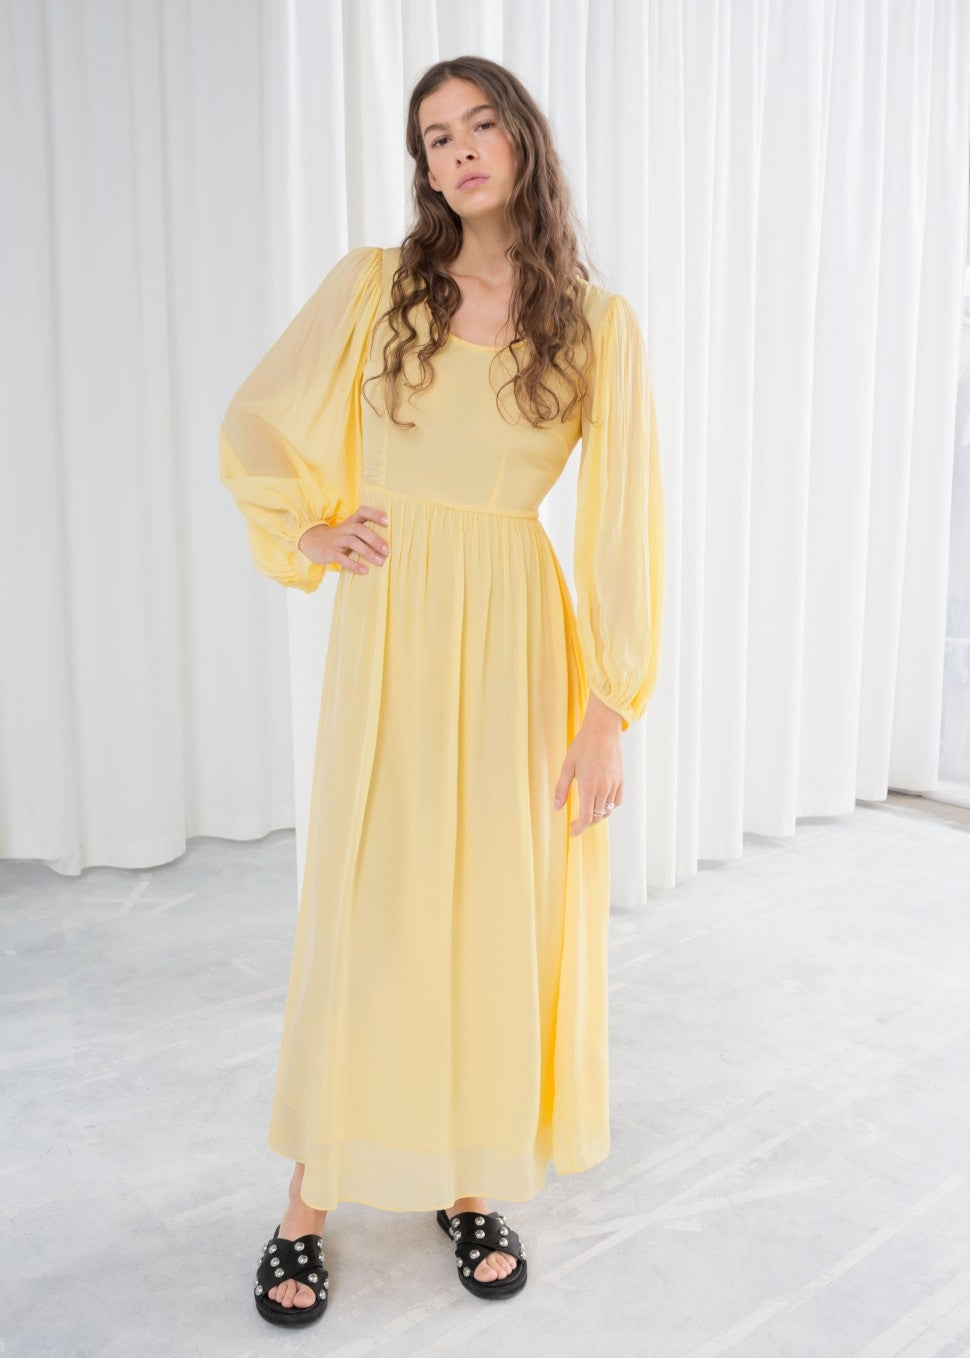 & Other Stories yellow maxi dress